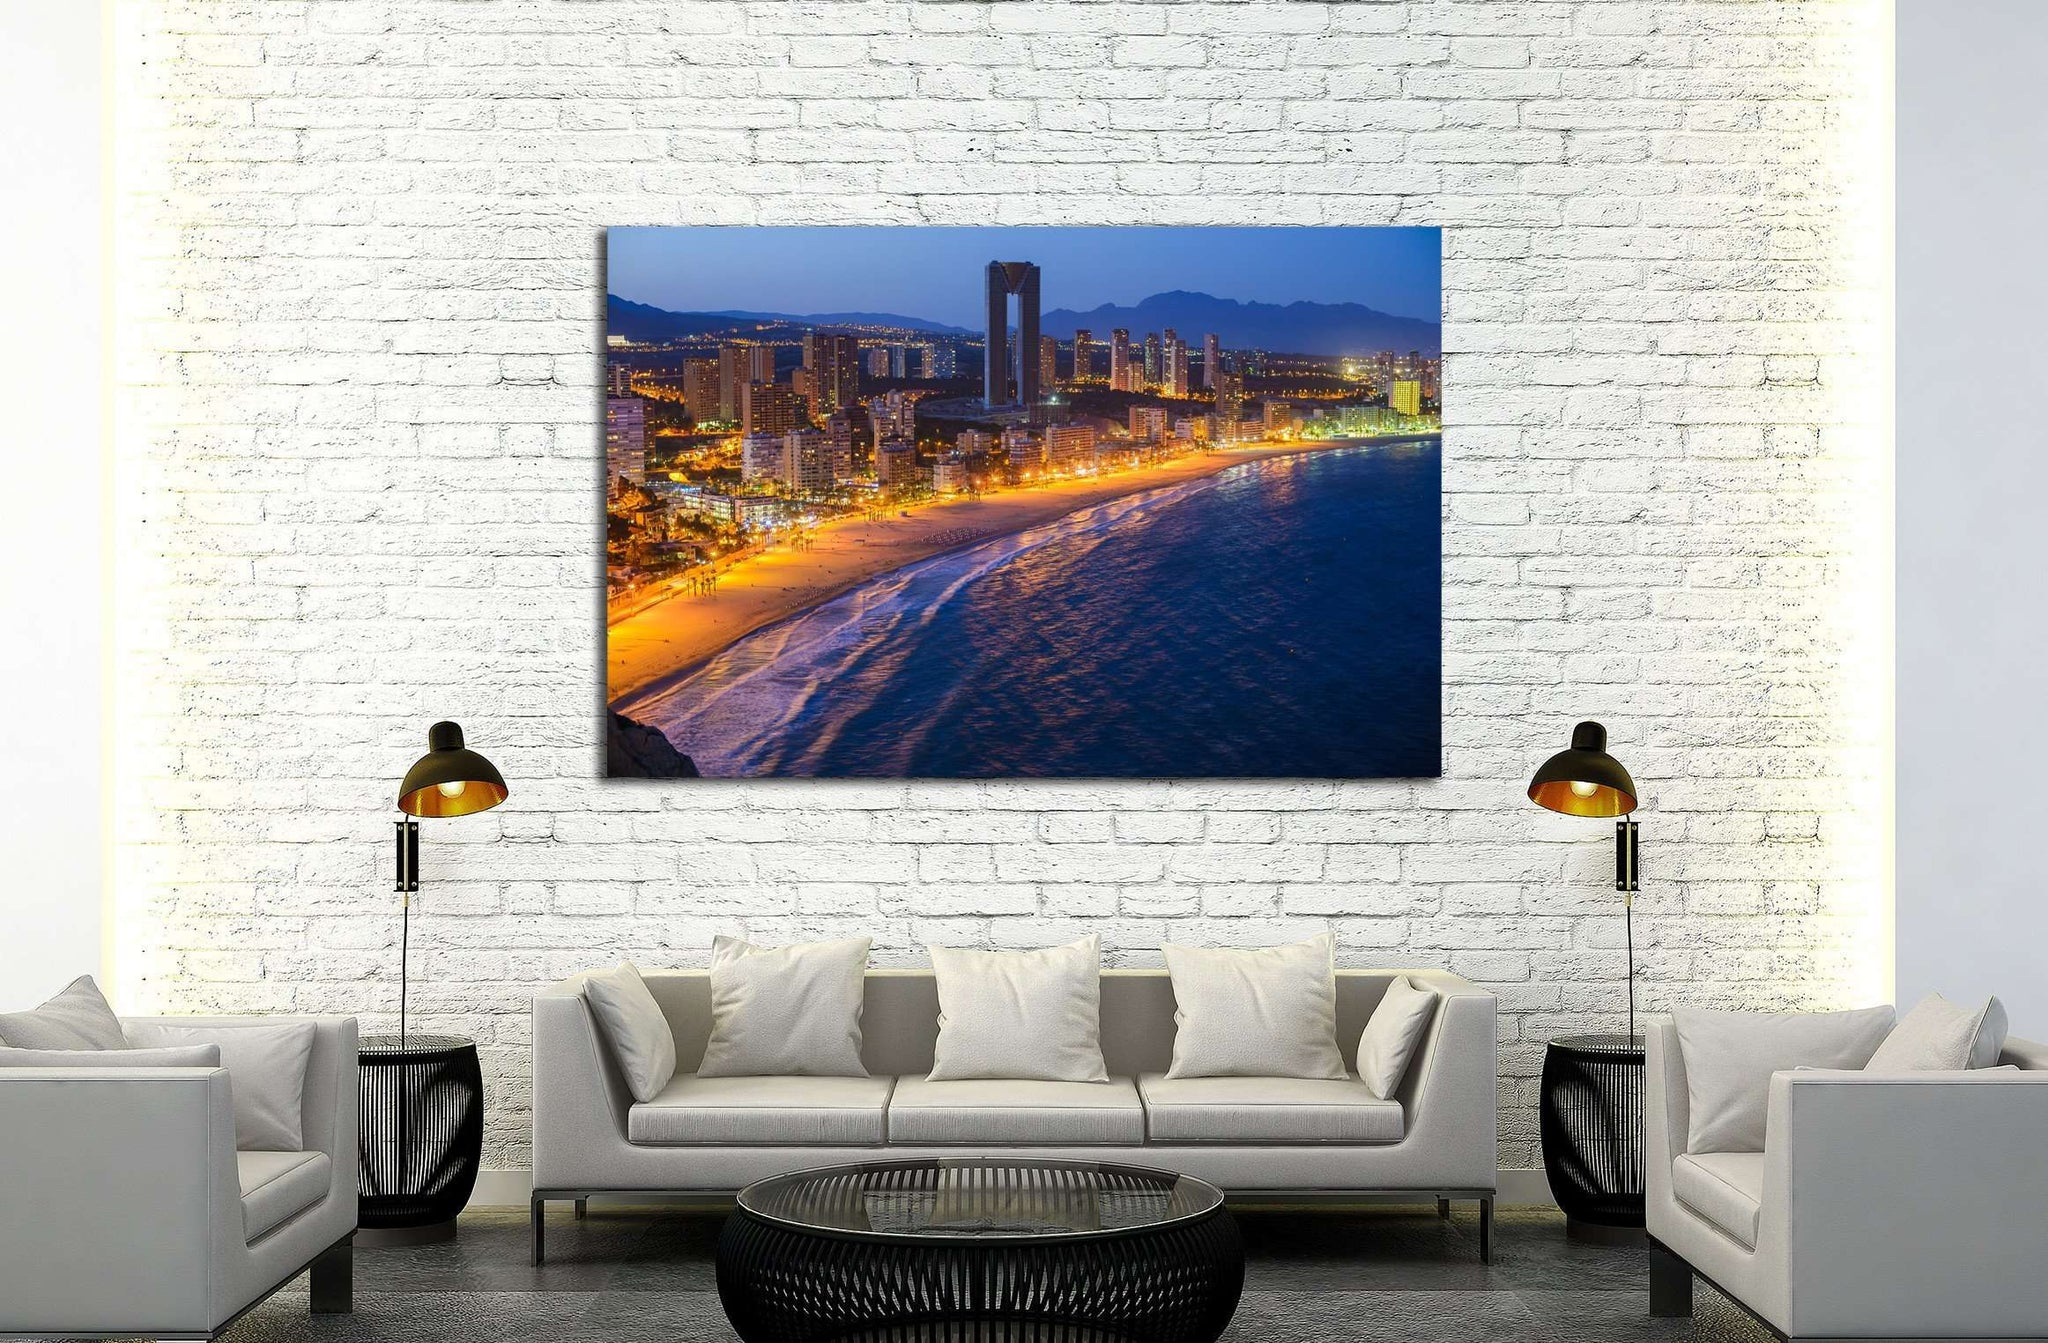 Breathtaking night view of the coastline in Benidorm with high buildings, mountains, sea and city lights №2209 Ready to Hang Canvas Print